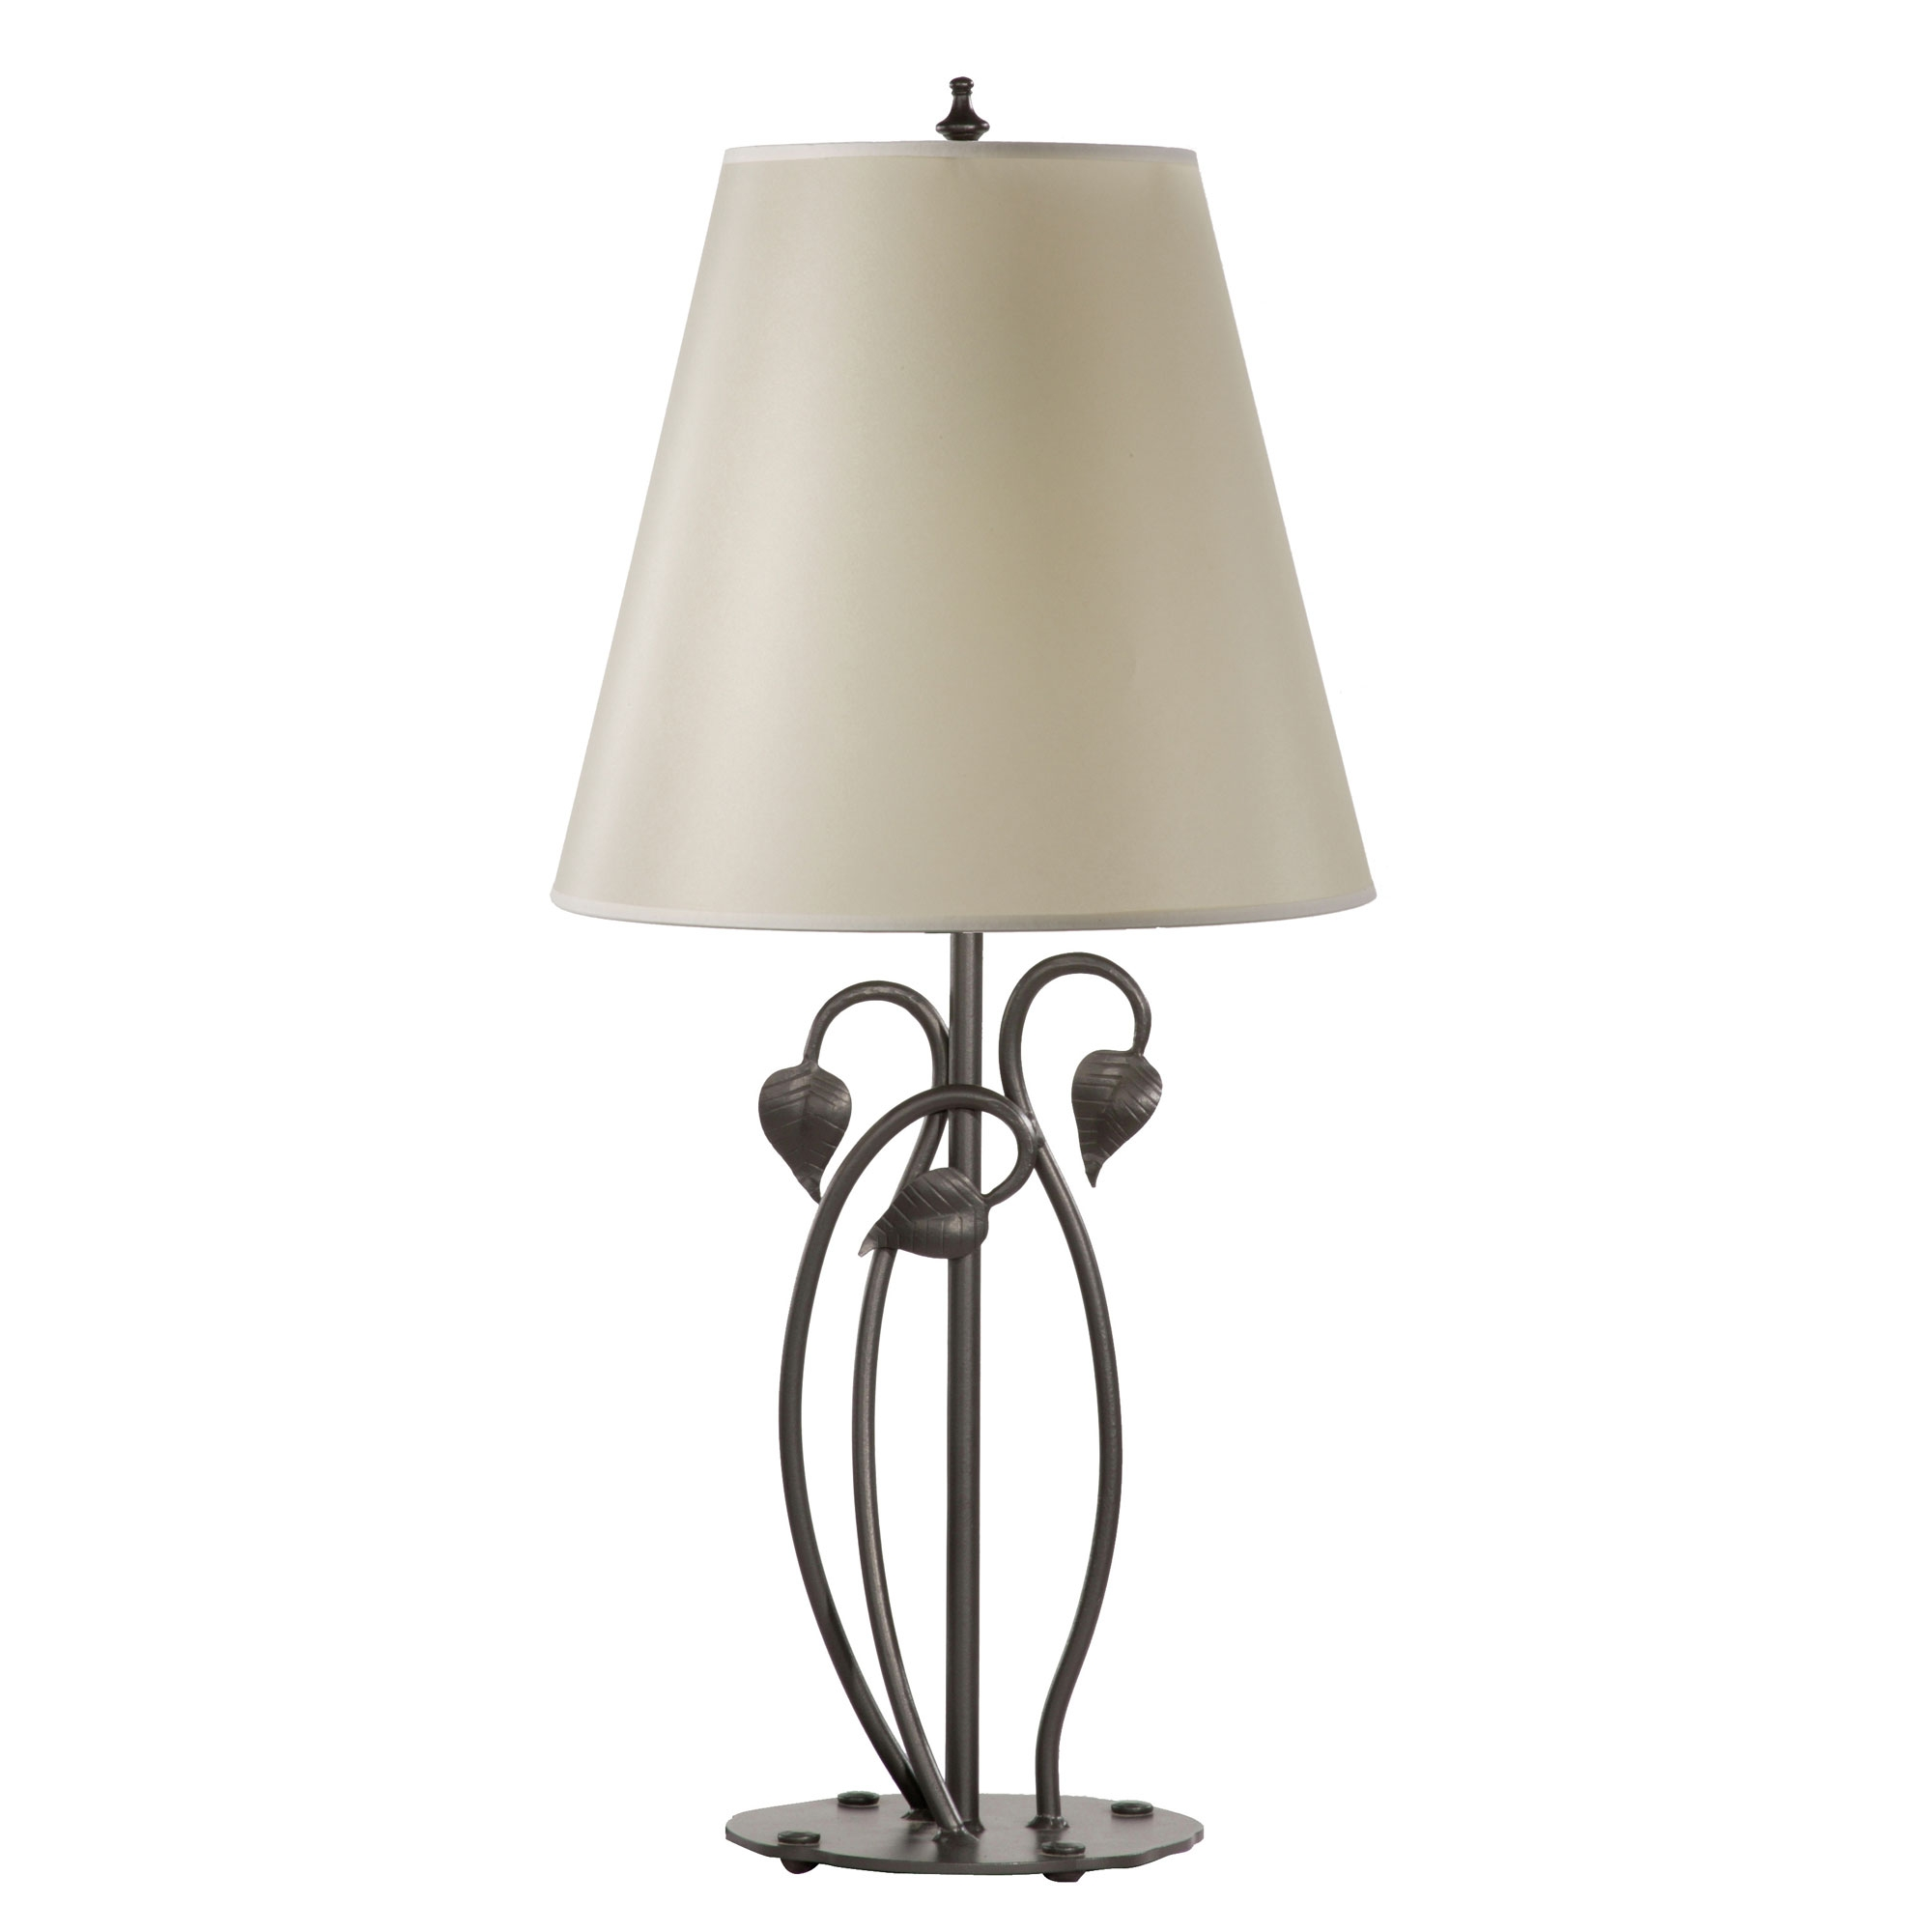 Wrought iron ginger leaf table lamp by stone county ironworks ginger leaf table lamp aloadofball Image collections